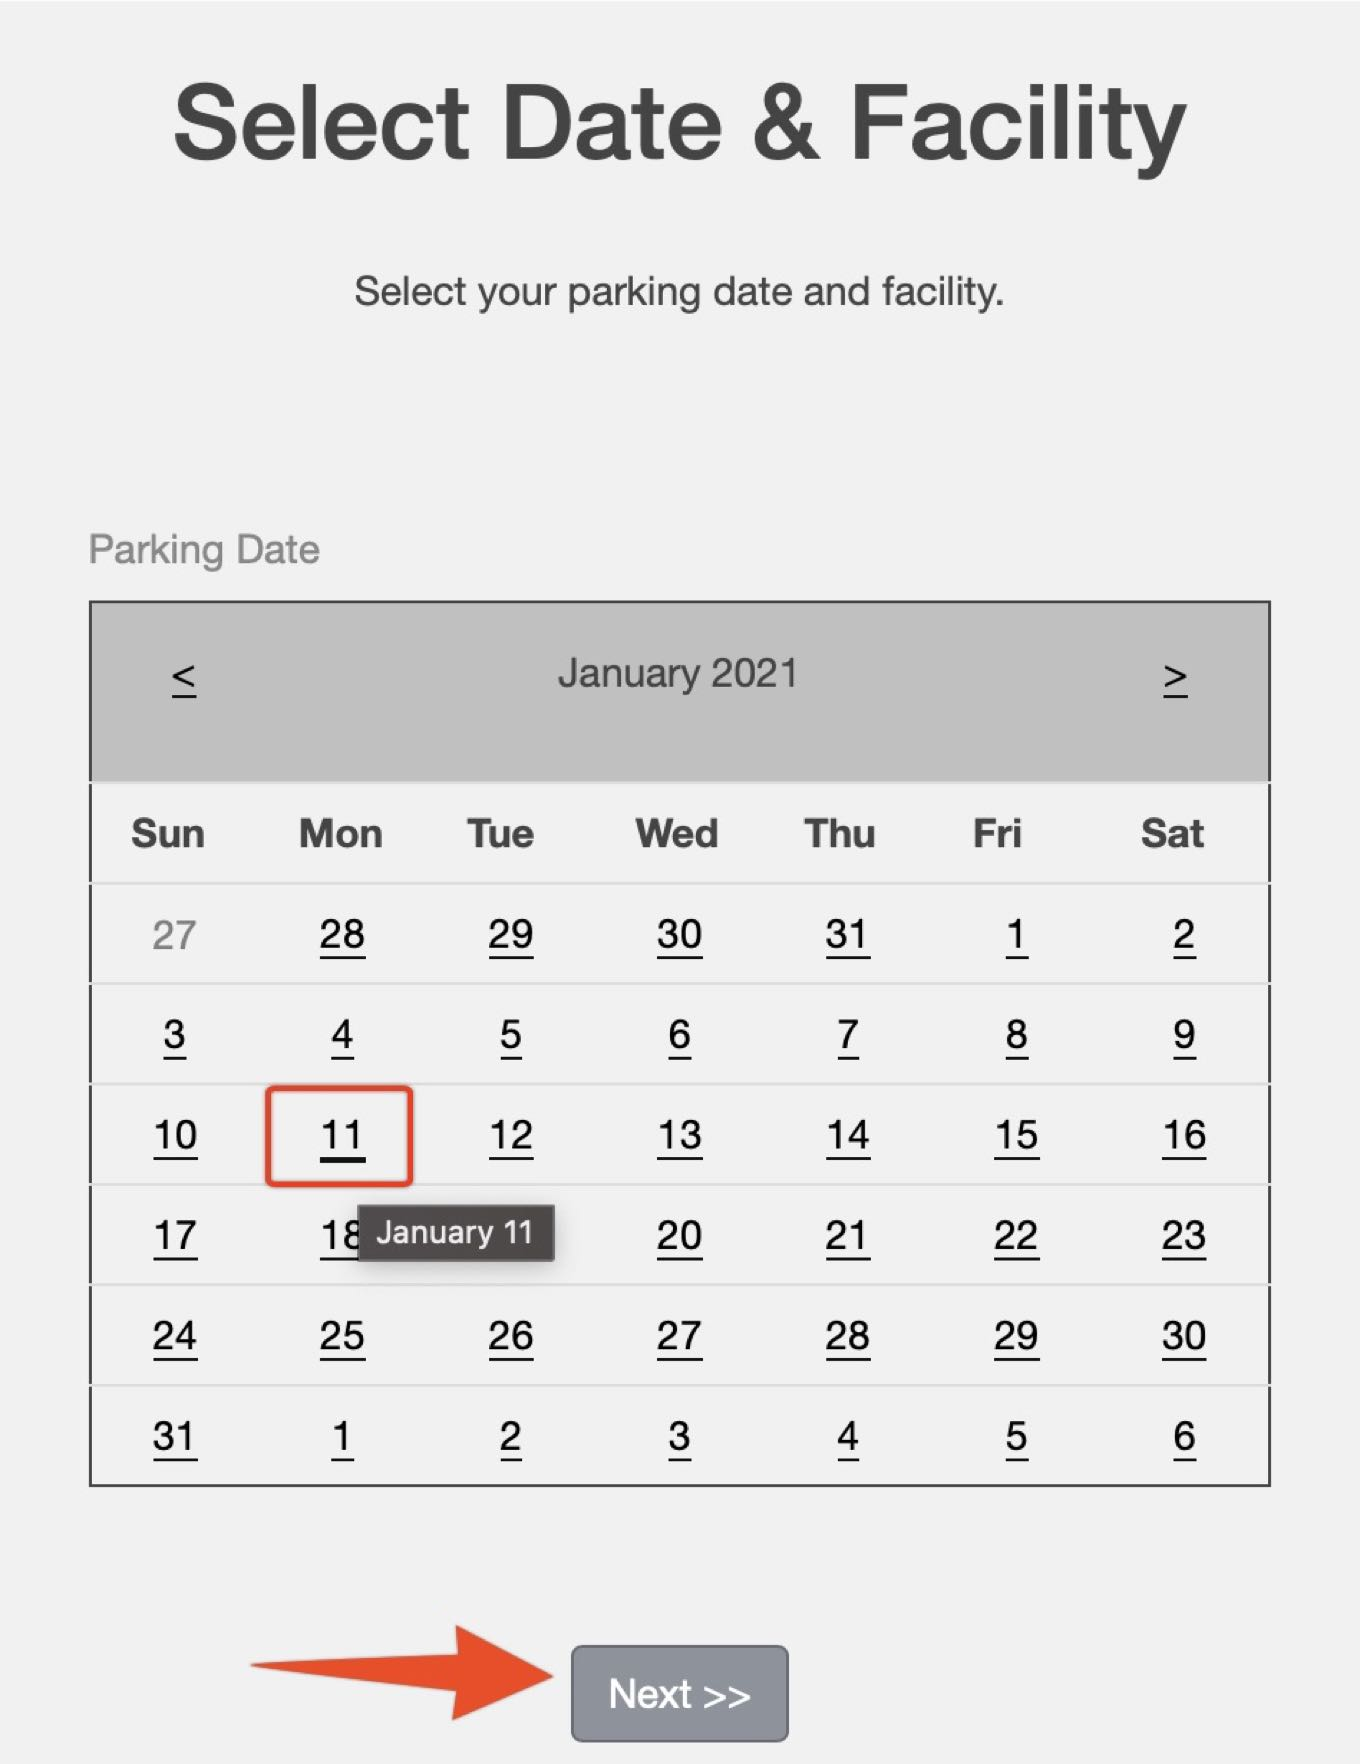 Select Date & Facility